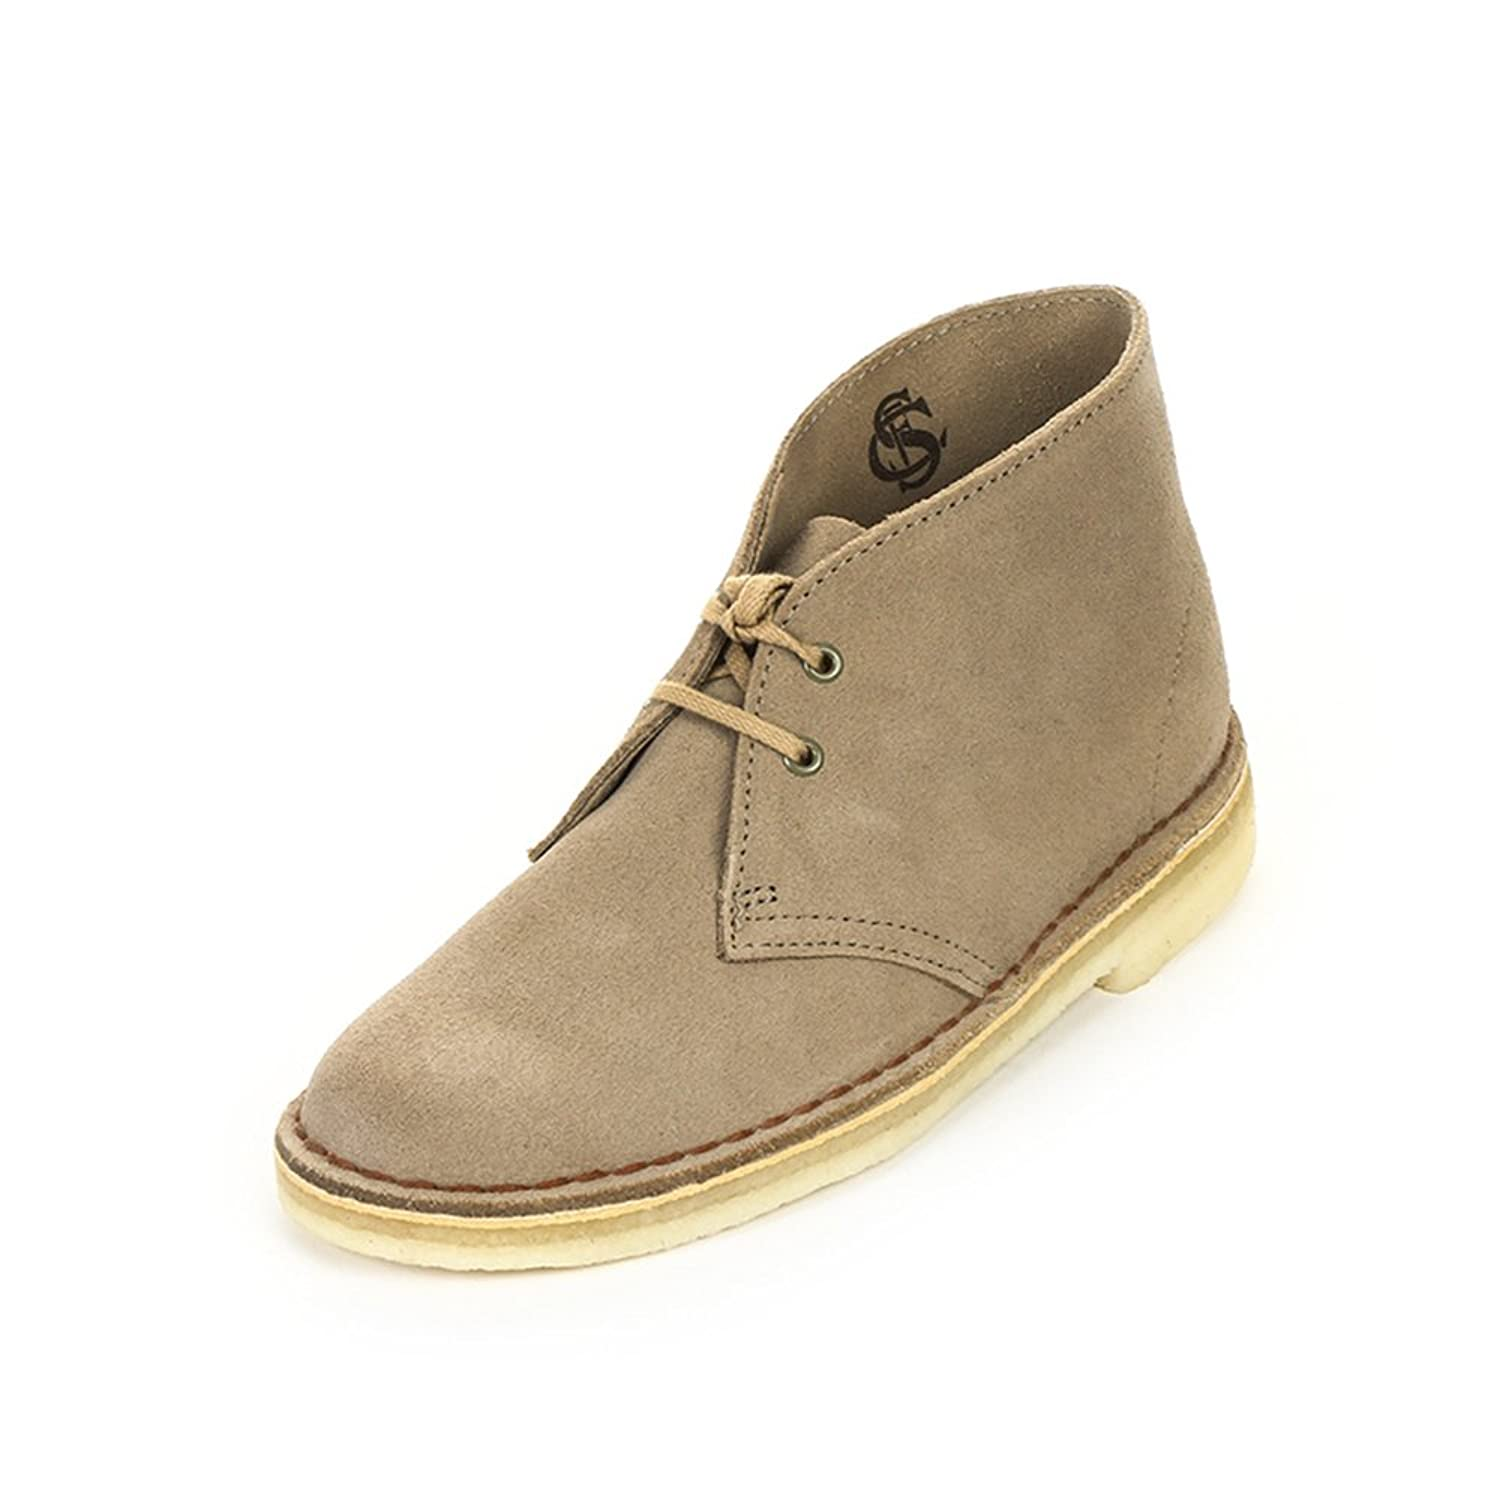 Earn 5% cash back at Clarks Shop Now You may earn 5% cash back, up to a maximum of $ per transaction, for each qualifying purchase made at trainingsg.gq